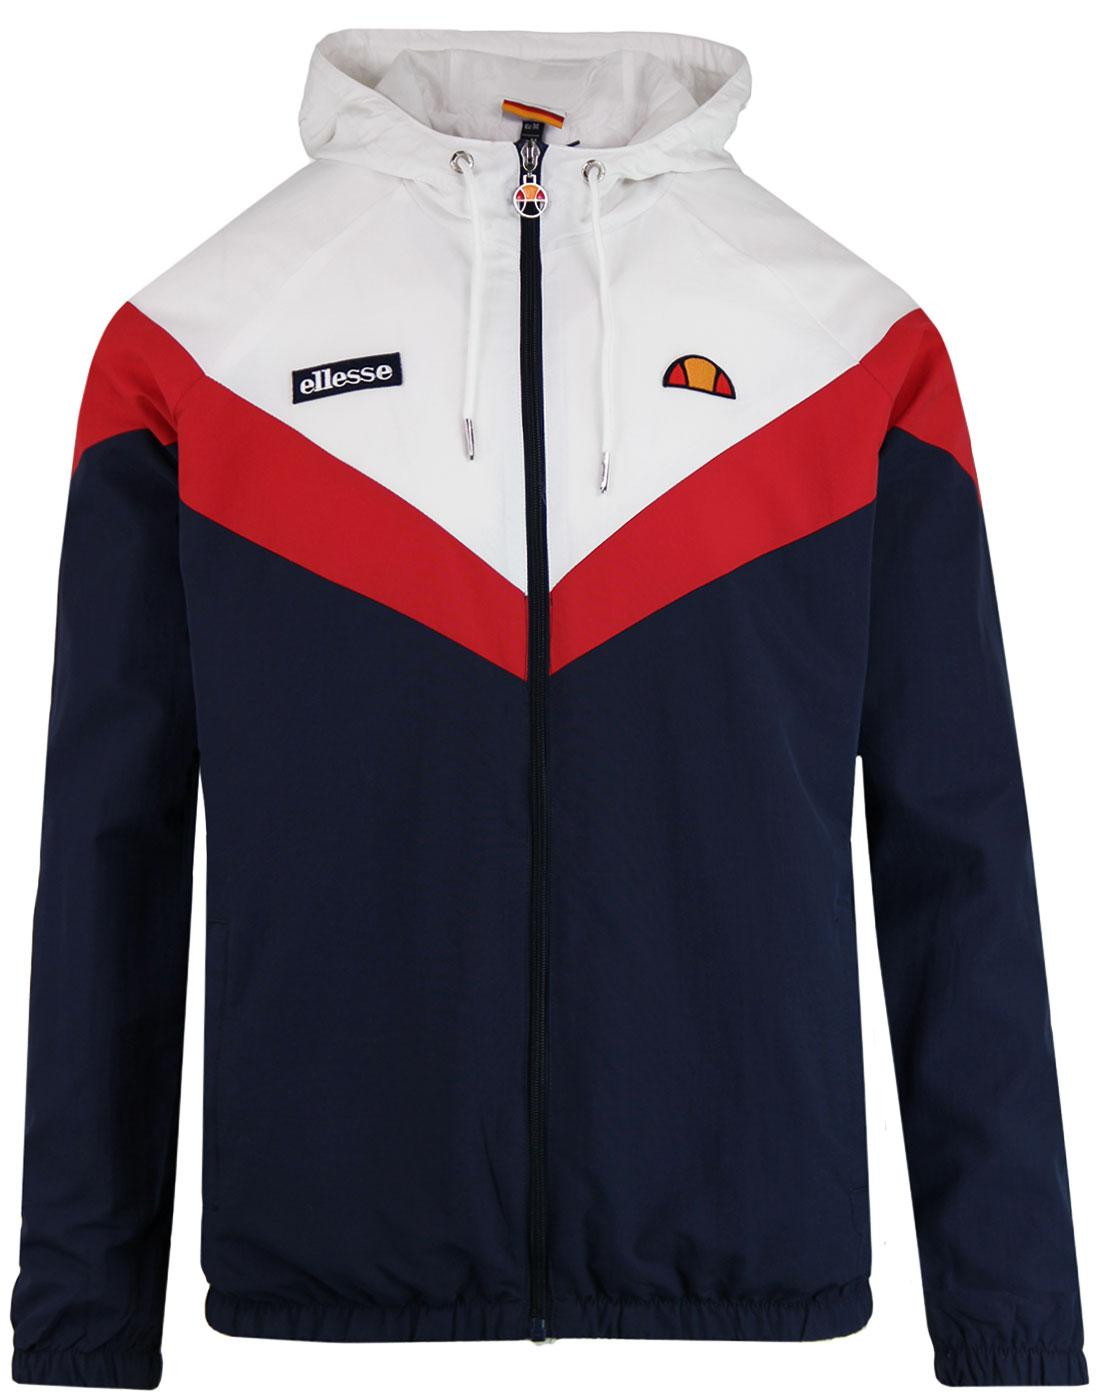 Faenza ELLESSE Retro Chevron Hooded Track Jacket